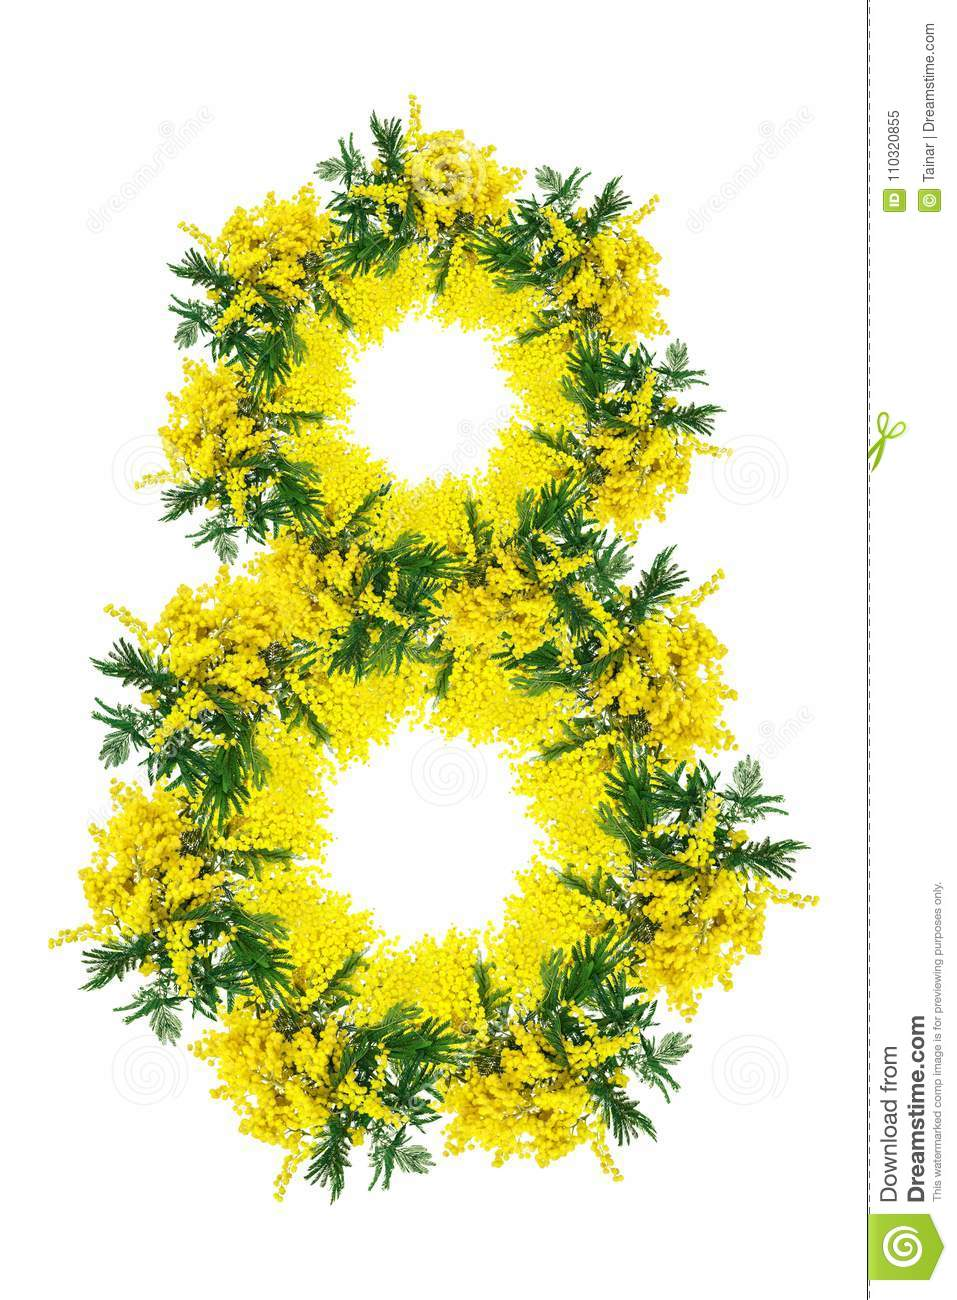 Fiori 8 Marzo Foto.Mimosa Flower Blossom Isolated On White Background Number Eight